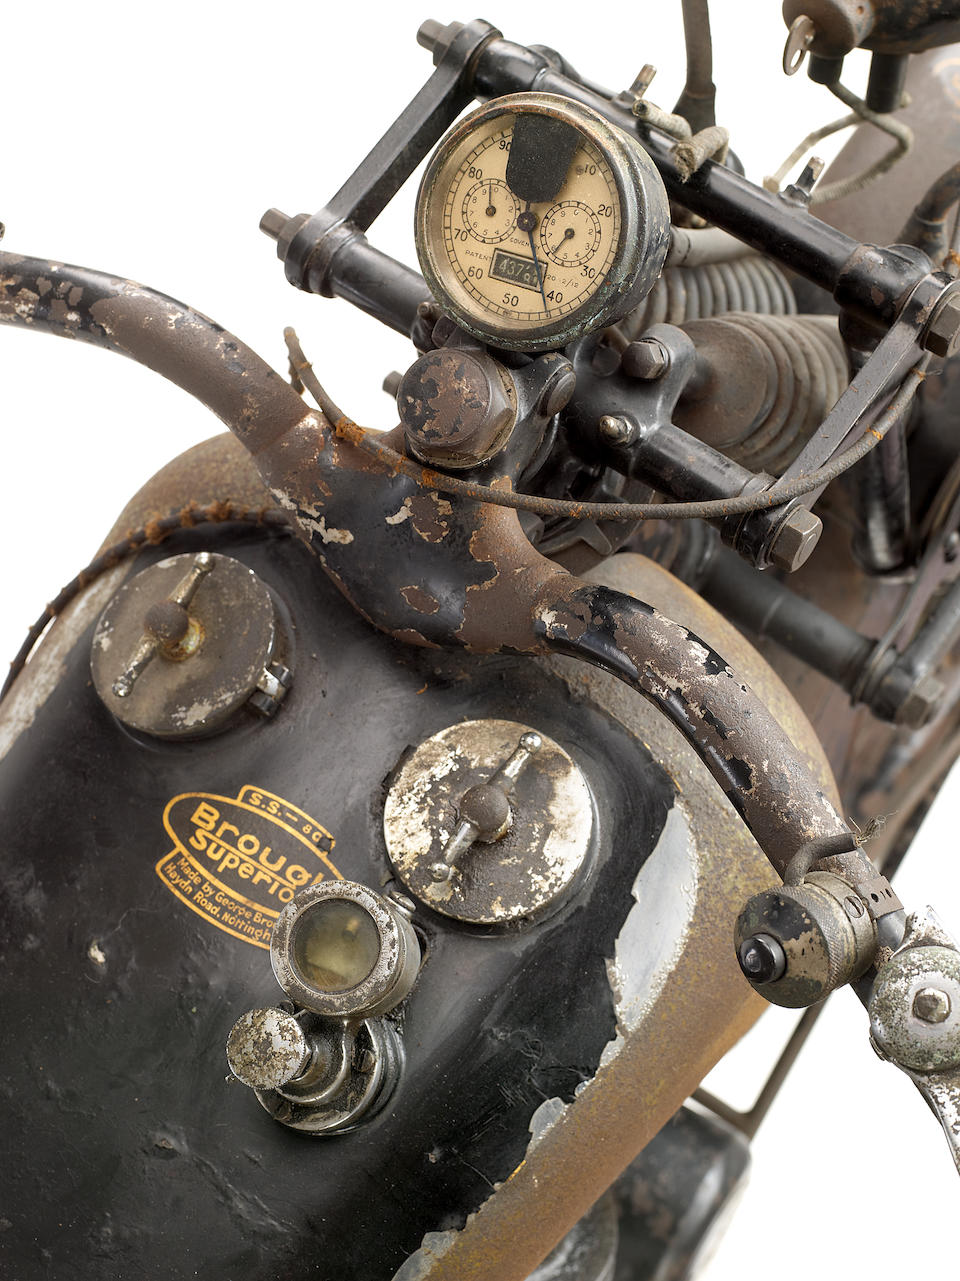 Single family ownership from new,1925 Brough Superior 981cc SS80 Frame no. 321 Engine no. 36431